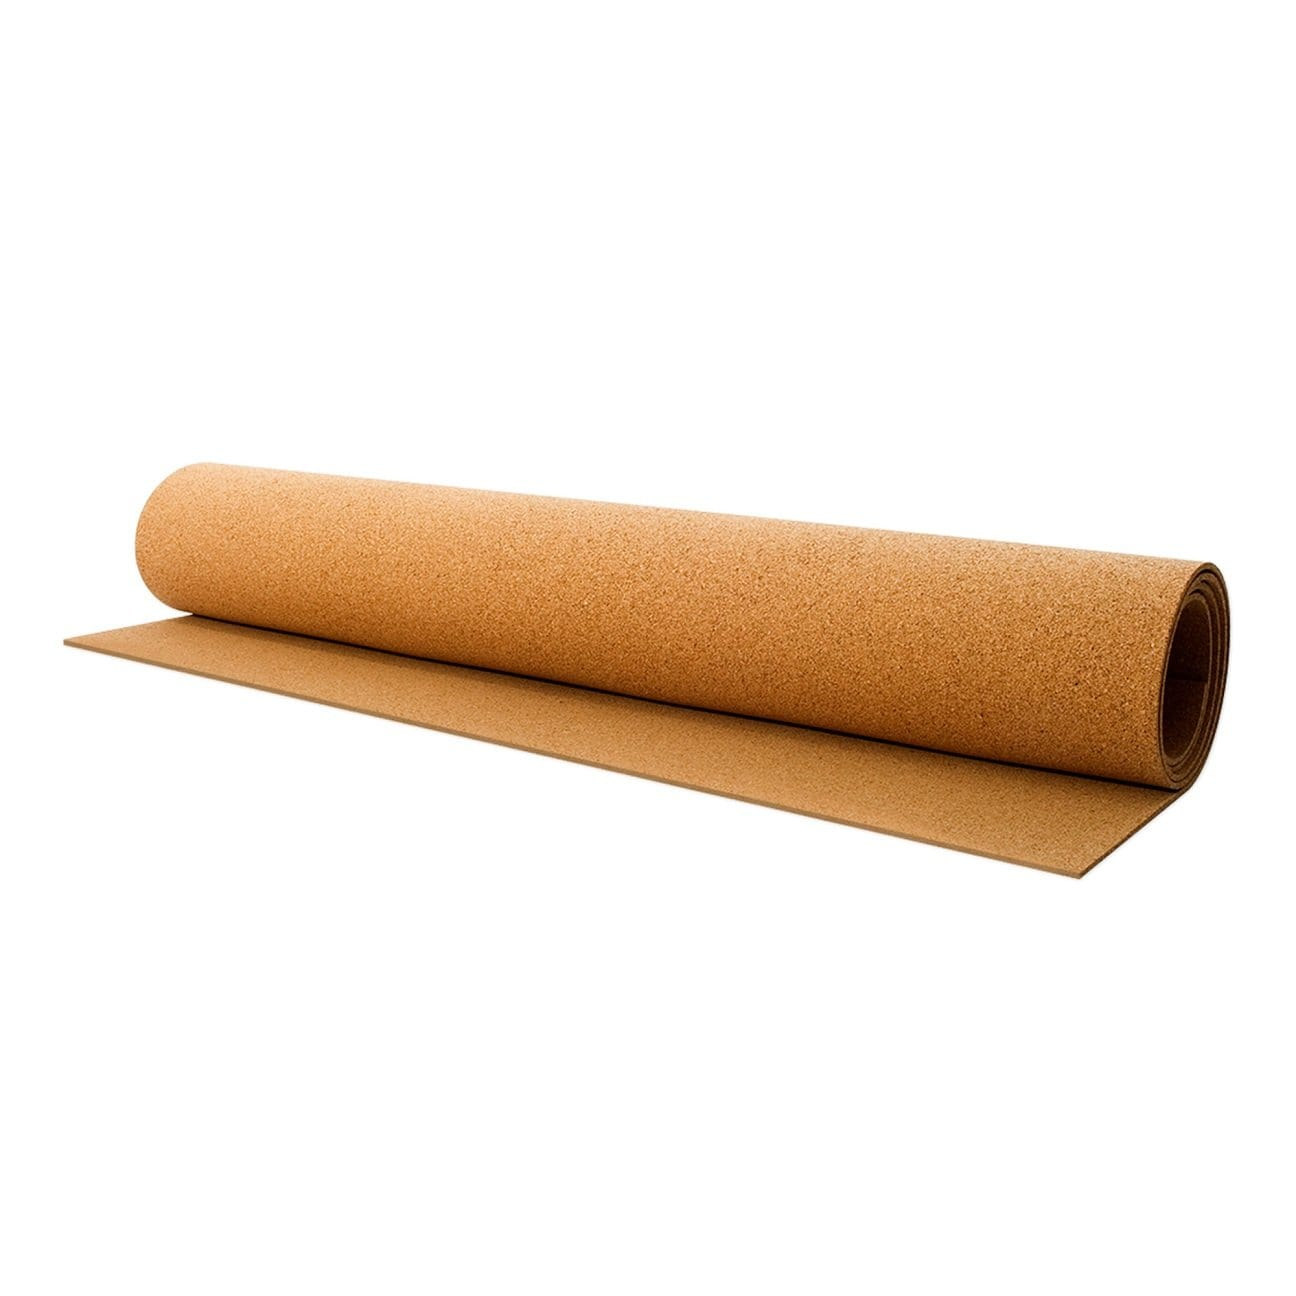 "Cork Rolls - Precut Lengths in 48"" Width"